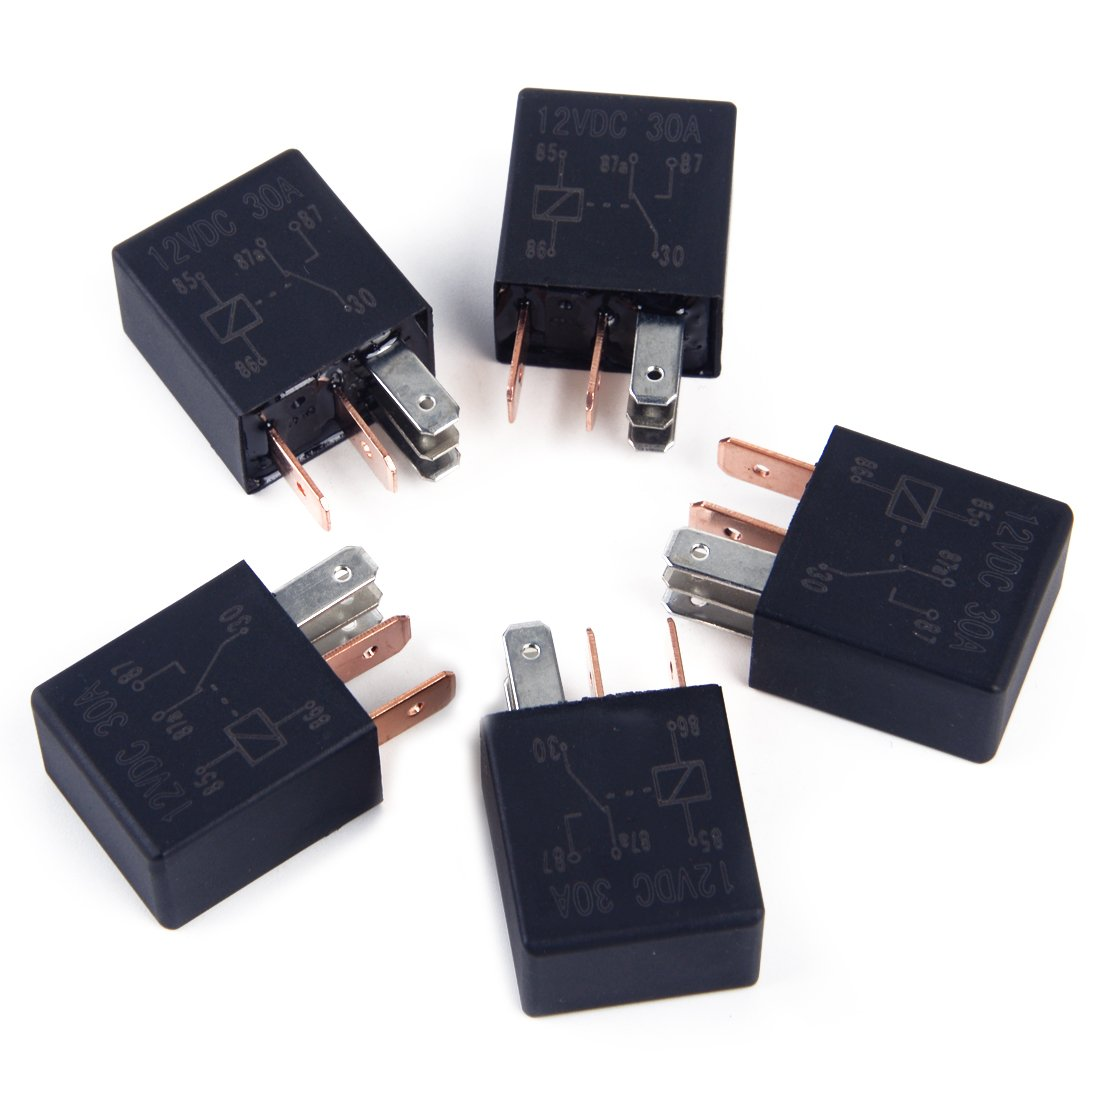 5 x 12V 30A 5 broches Micro Automotive Changeover Car Relais de voiture pour camion Bike Bike Boat Power Switch